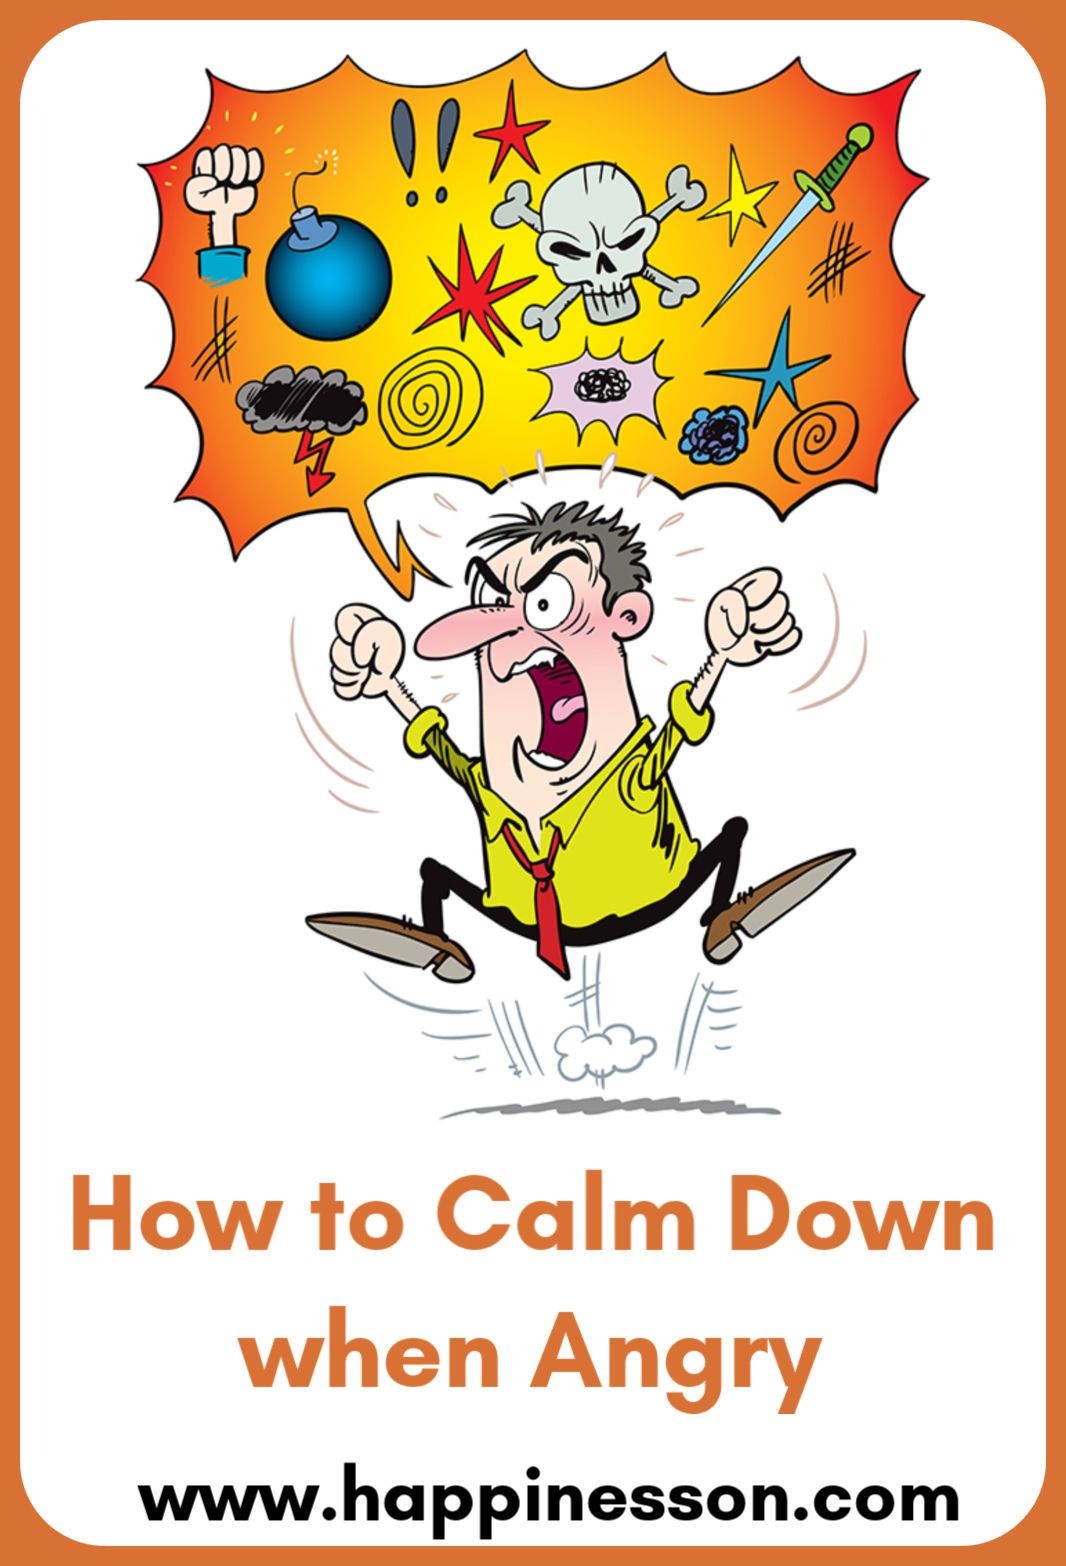 Anger Management How To Deal With Anger In Ten Easy Steps